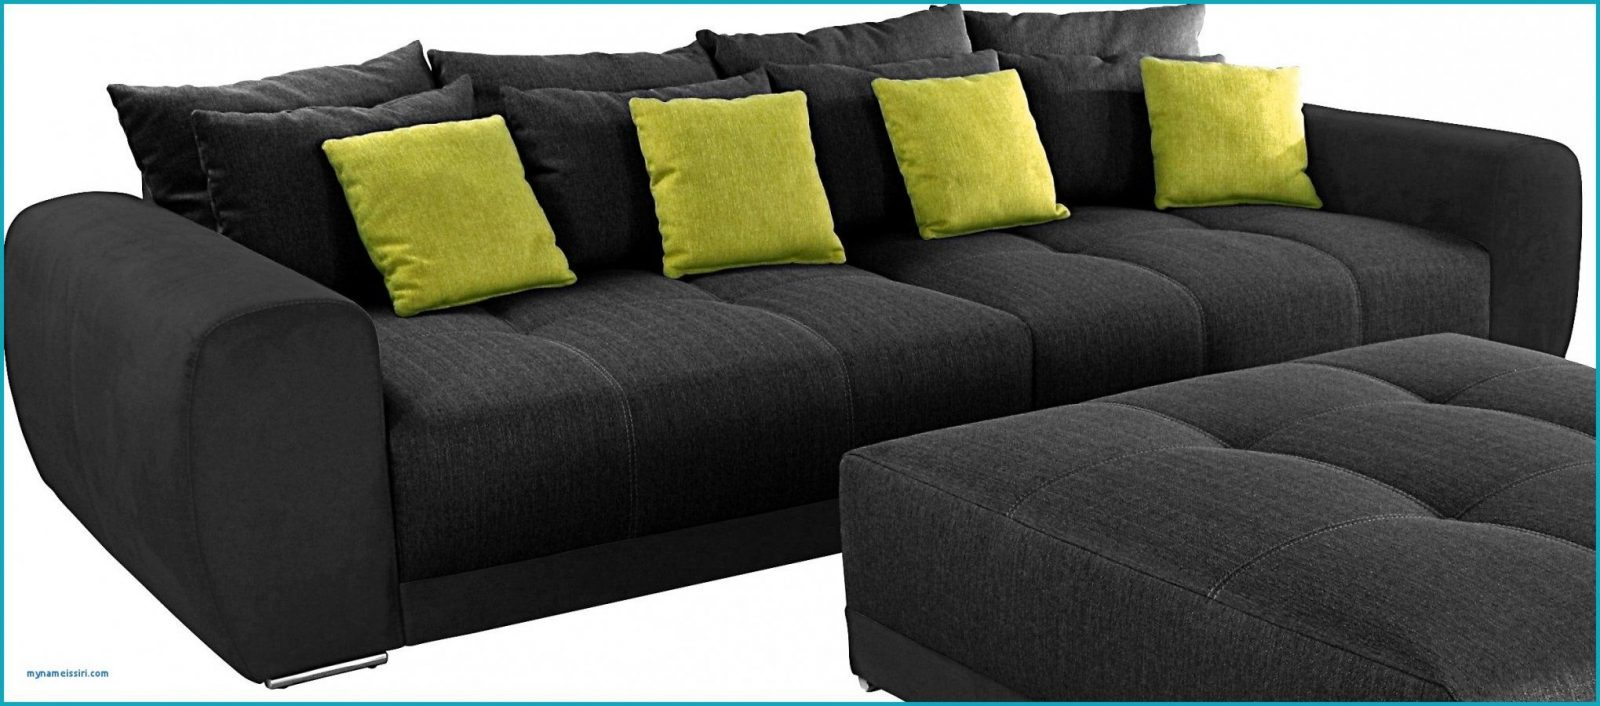 sofa auf rechnung als neukunde gallery of auf rechnung. Black Bedroom Furniture Sets. Home Design Ideas